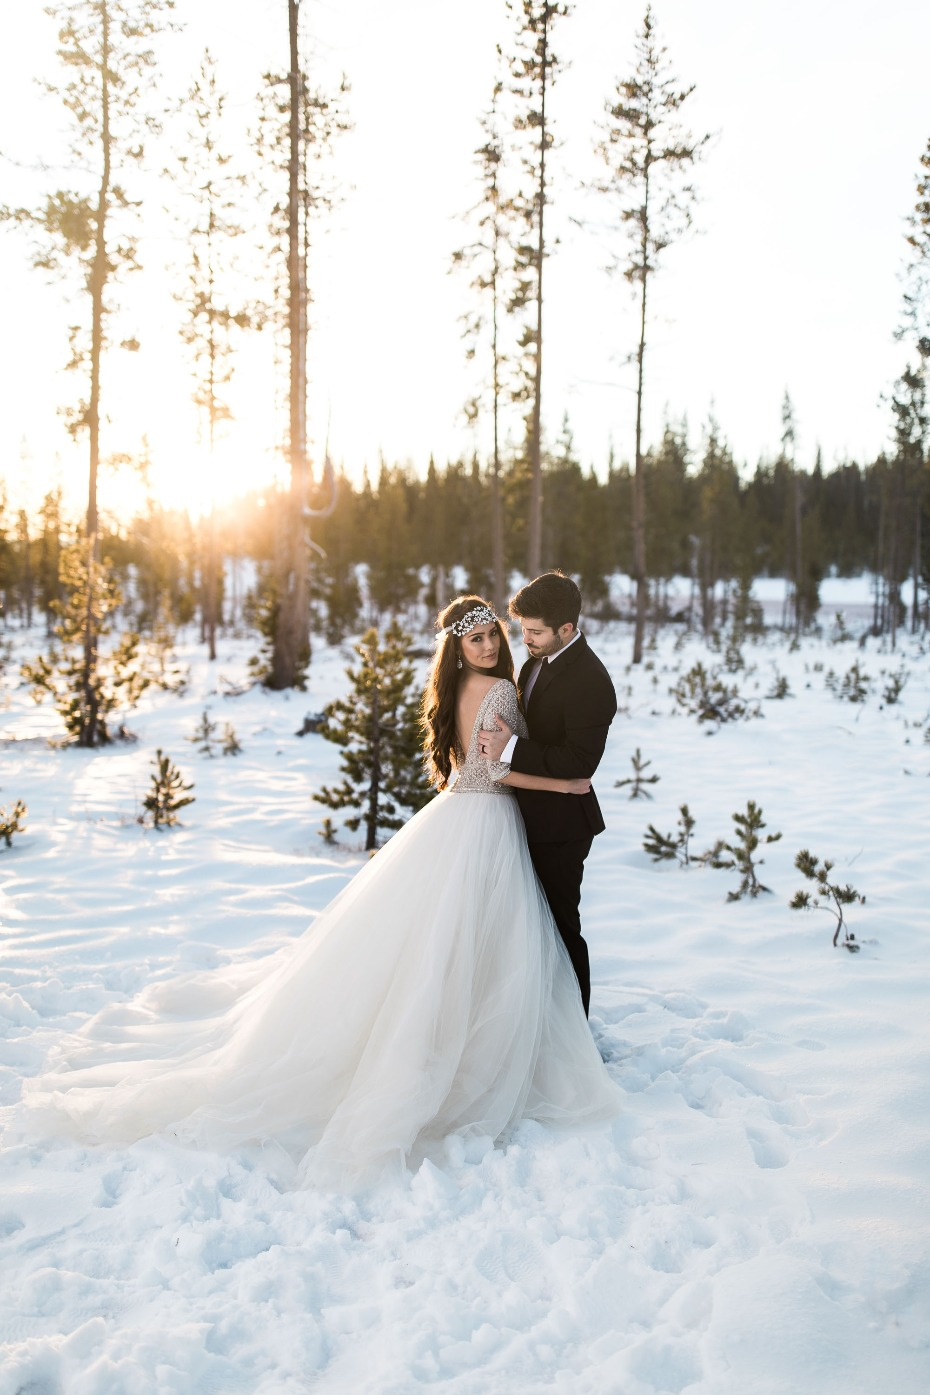 Glamorous winter wedding ideas